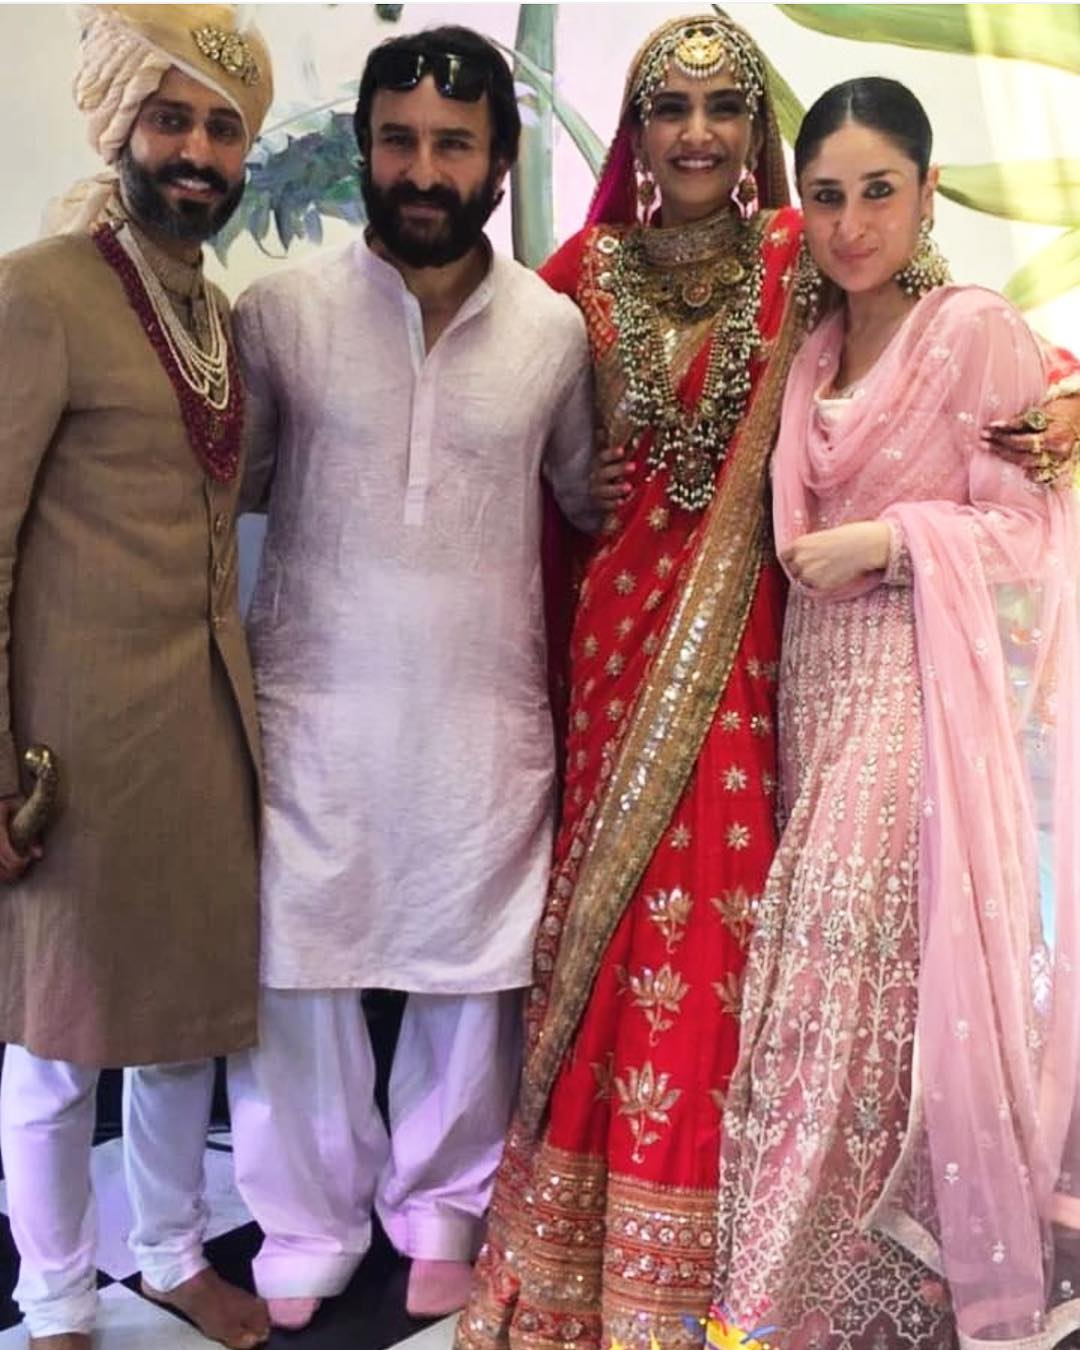 25-1 Sonam Kapoor Wedding Pics - Engagement and Complete Wedding Pictures